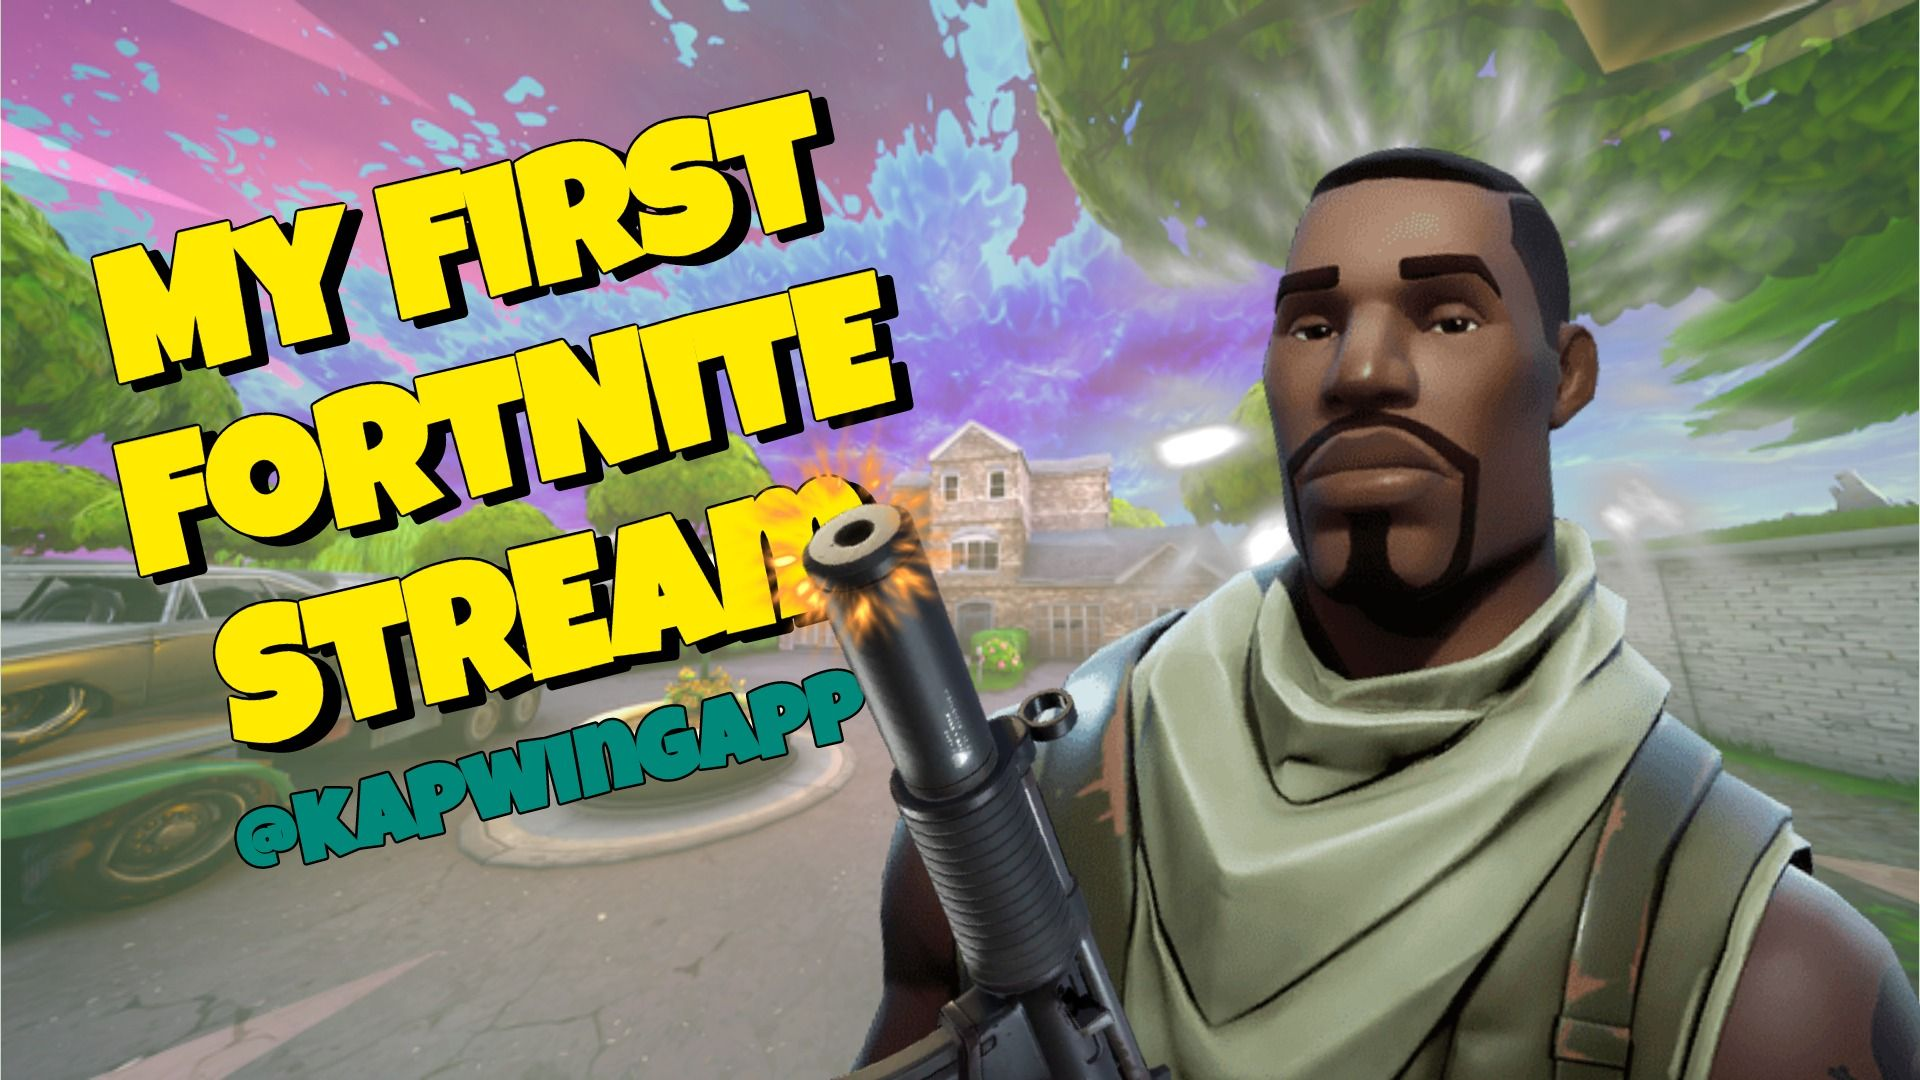 How To Make The Perfect Fortnite Thumbnail For Free With Templates For the love of got make a thumbnail with anything but an overused female skin. perfect fortnite thumbnail for